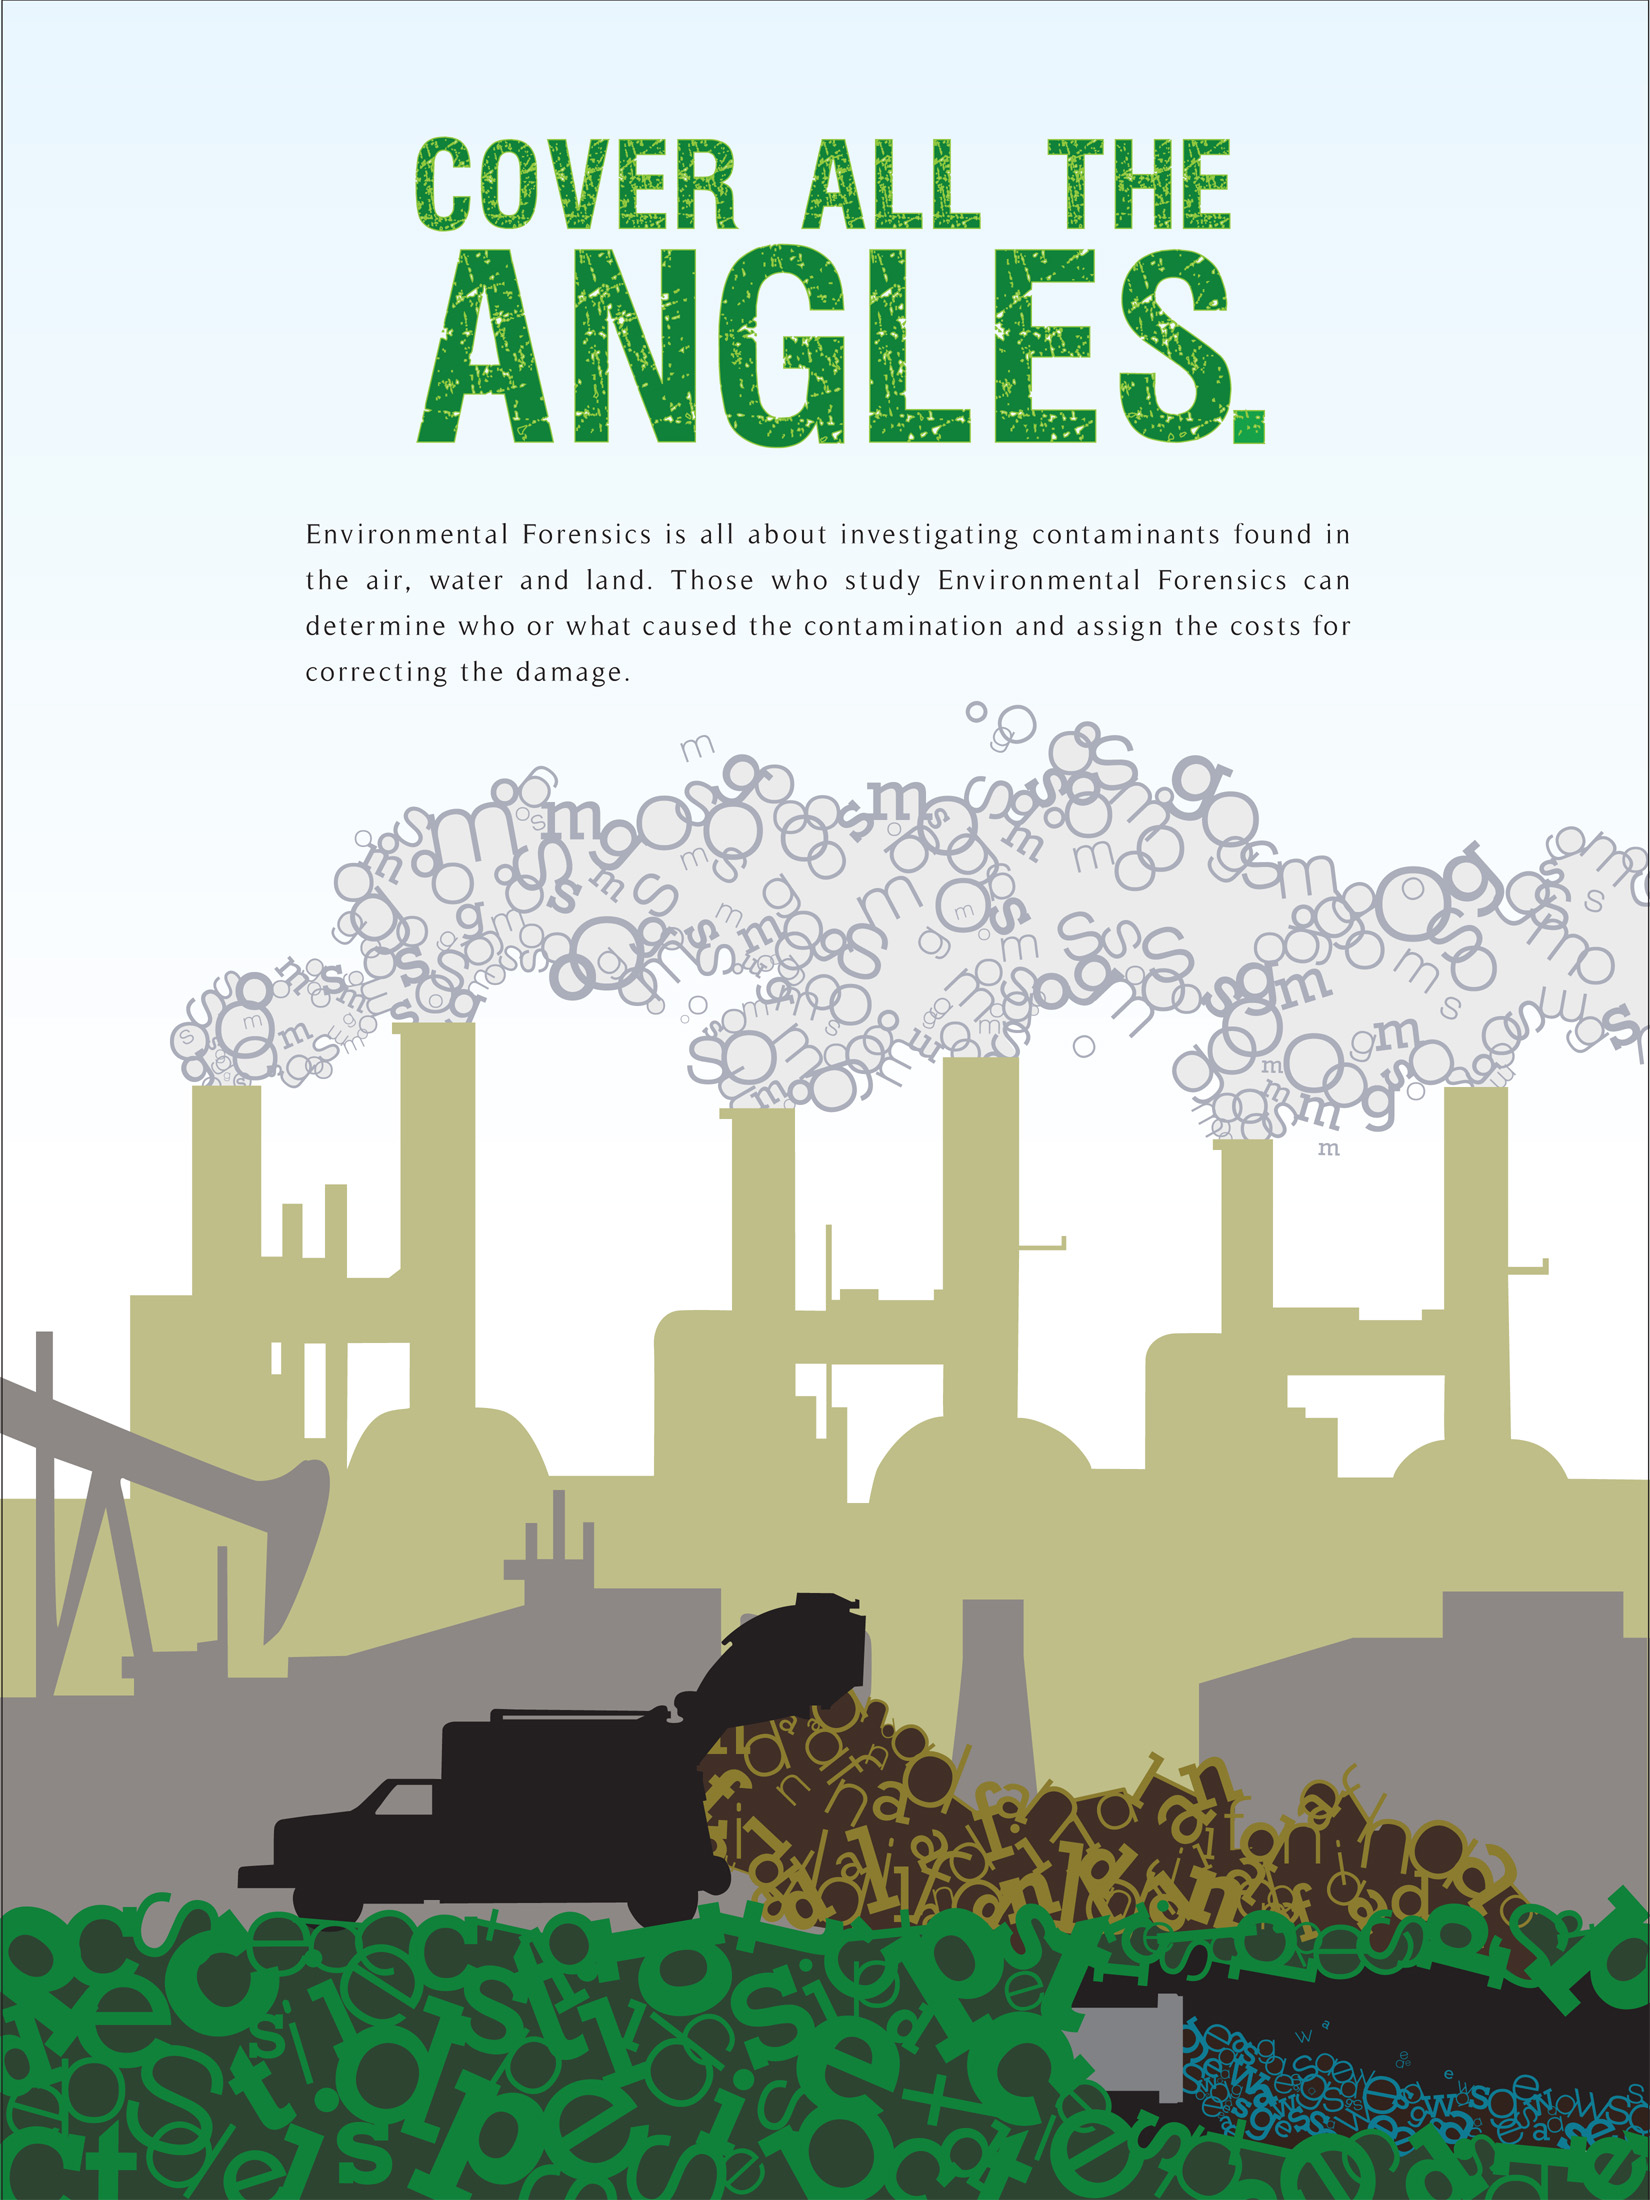 Poster design environmental issues - Poster 1 Defines Environmental Forensics And The Issues The Subject Deals With